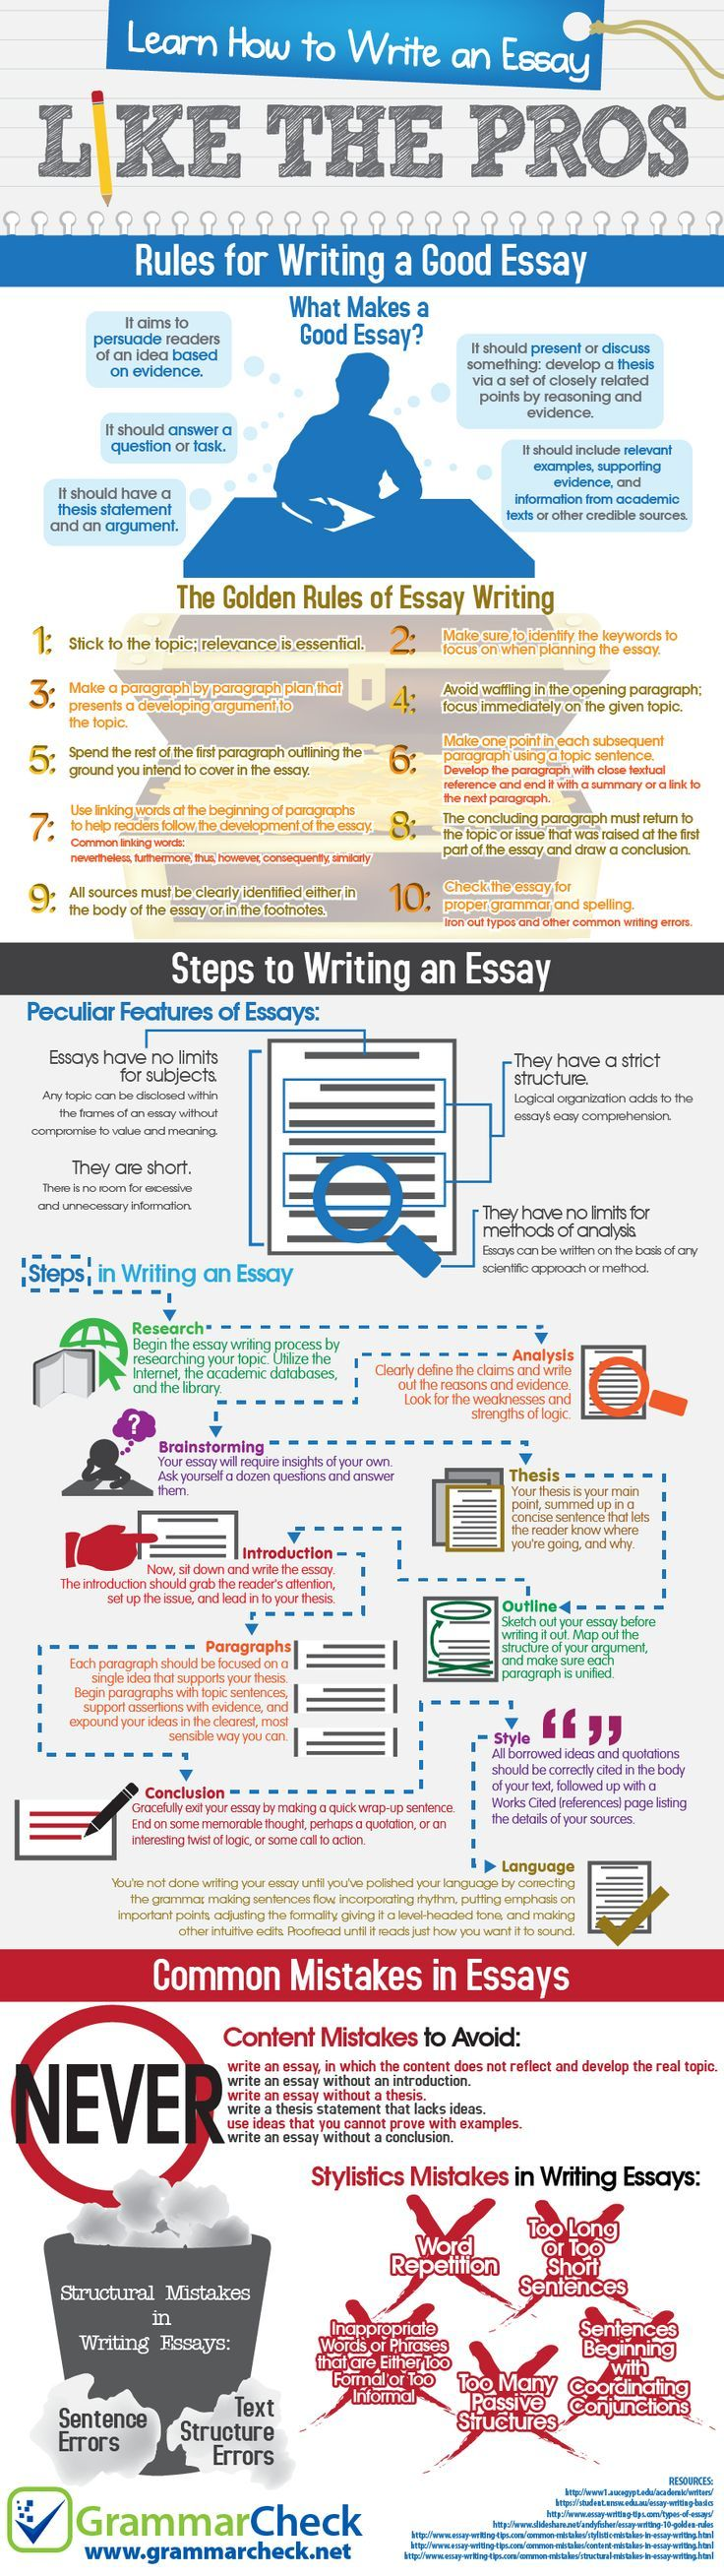 essay writing mistakes Signposting or Guiding your Reader